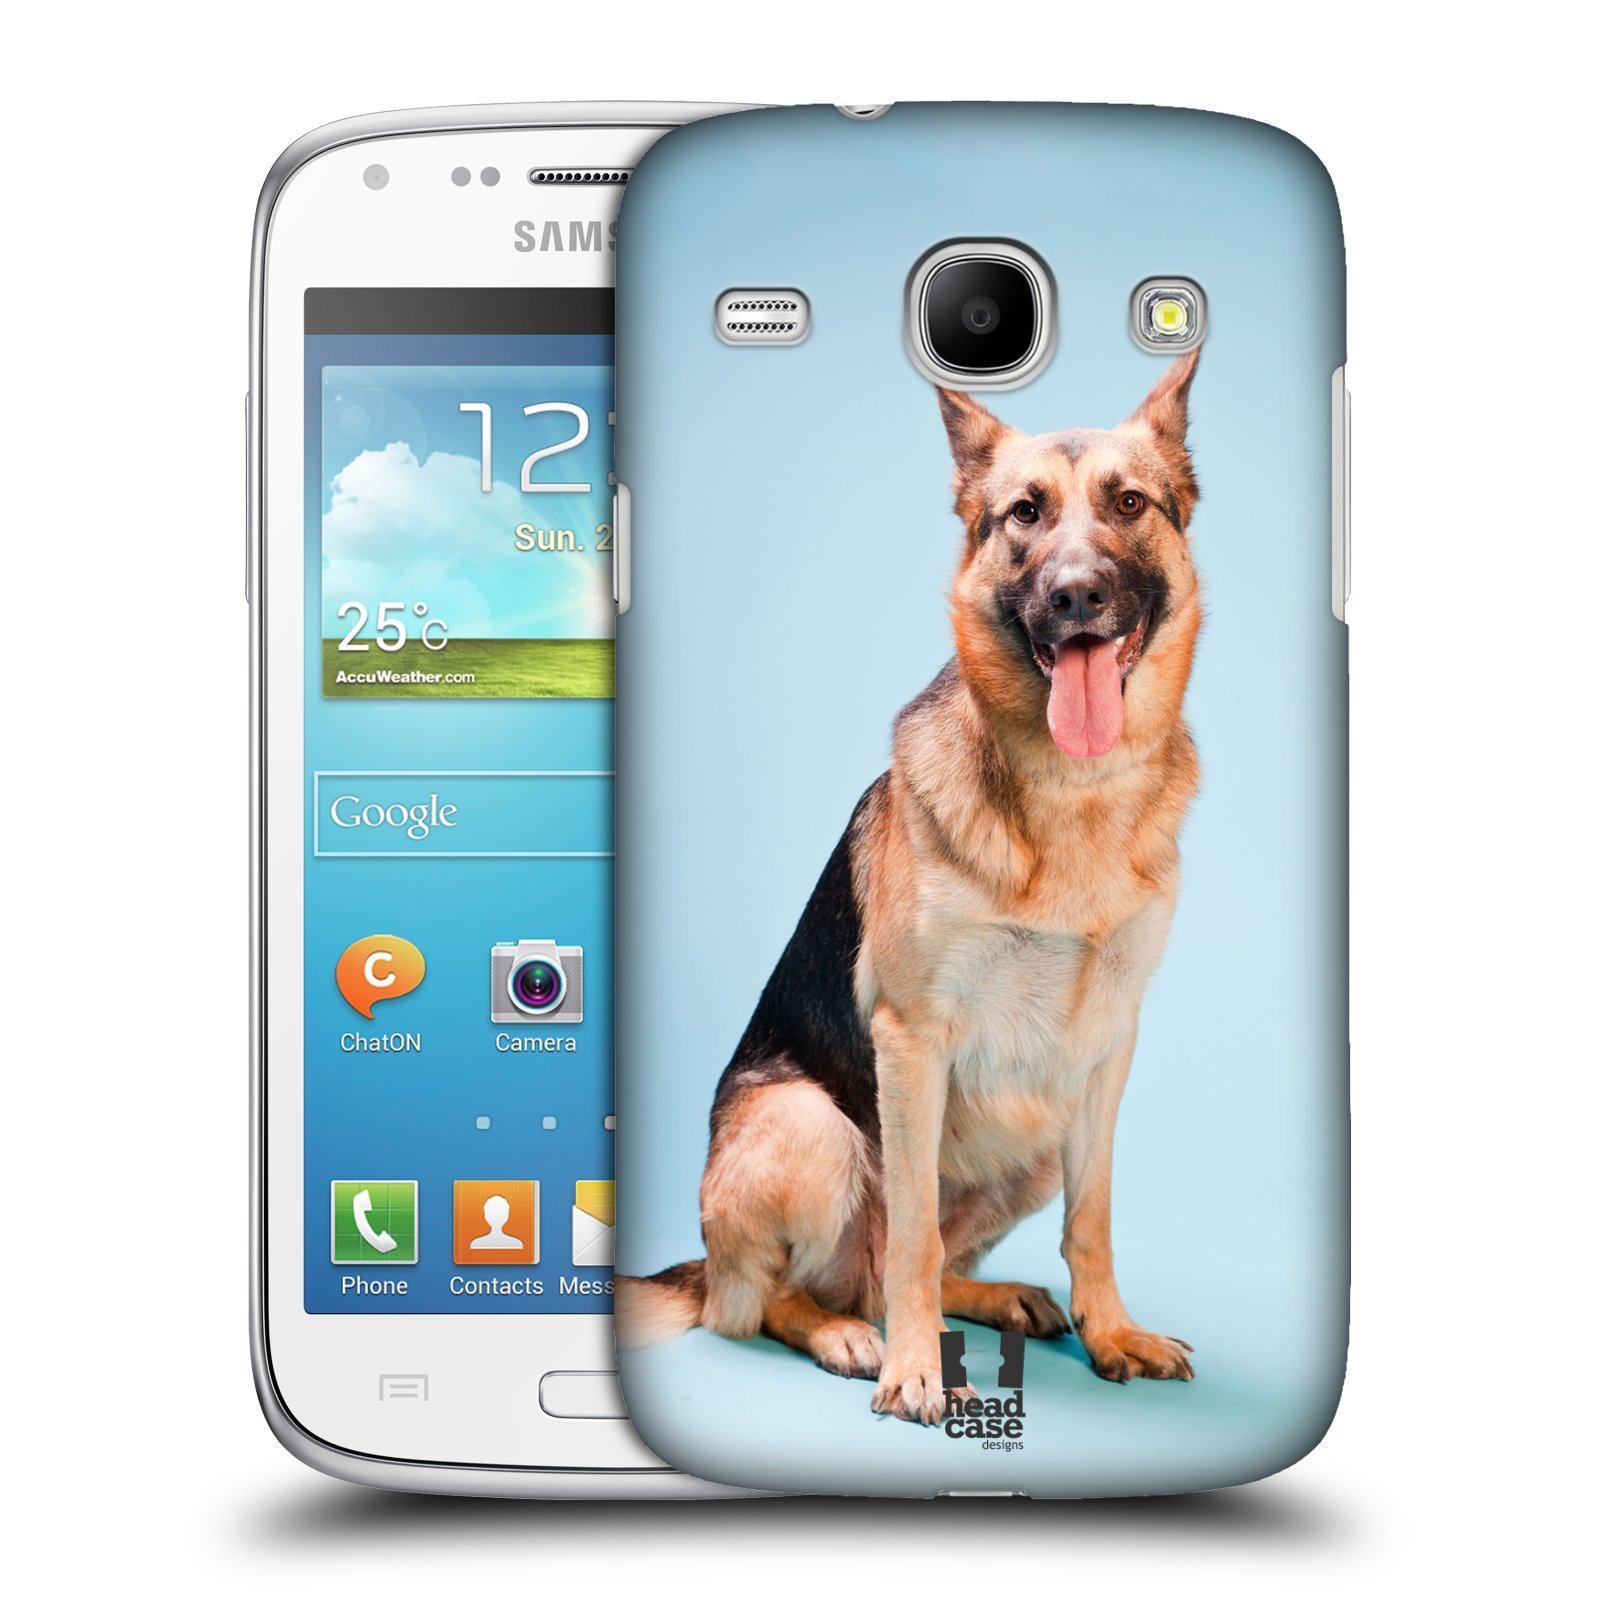 HEAD CASE DESIGNS DOG BREEDS CASE COVER FOR SAMSUNG GALAXY CORE I8260 I8262